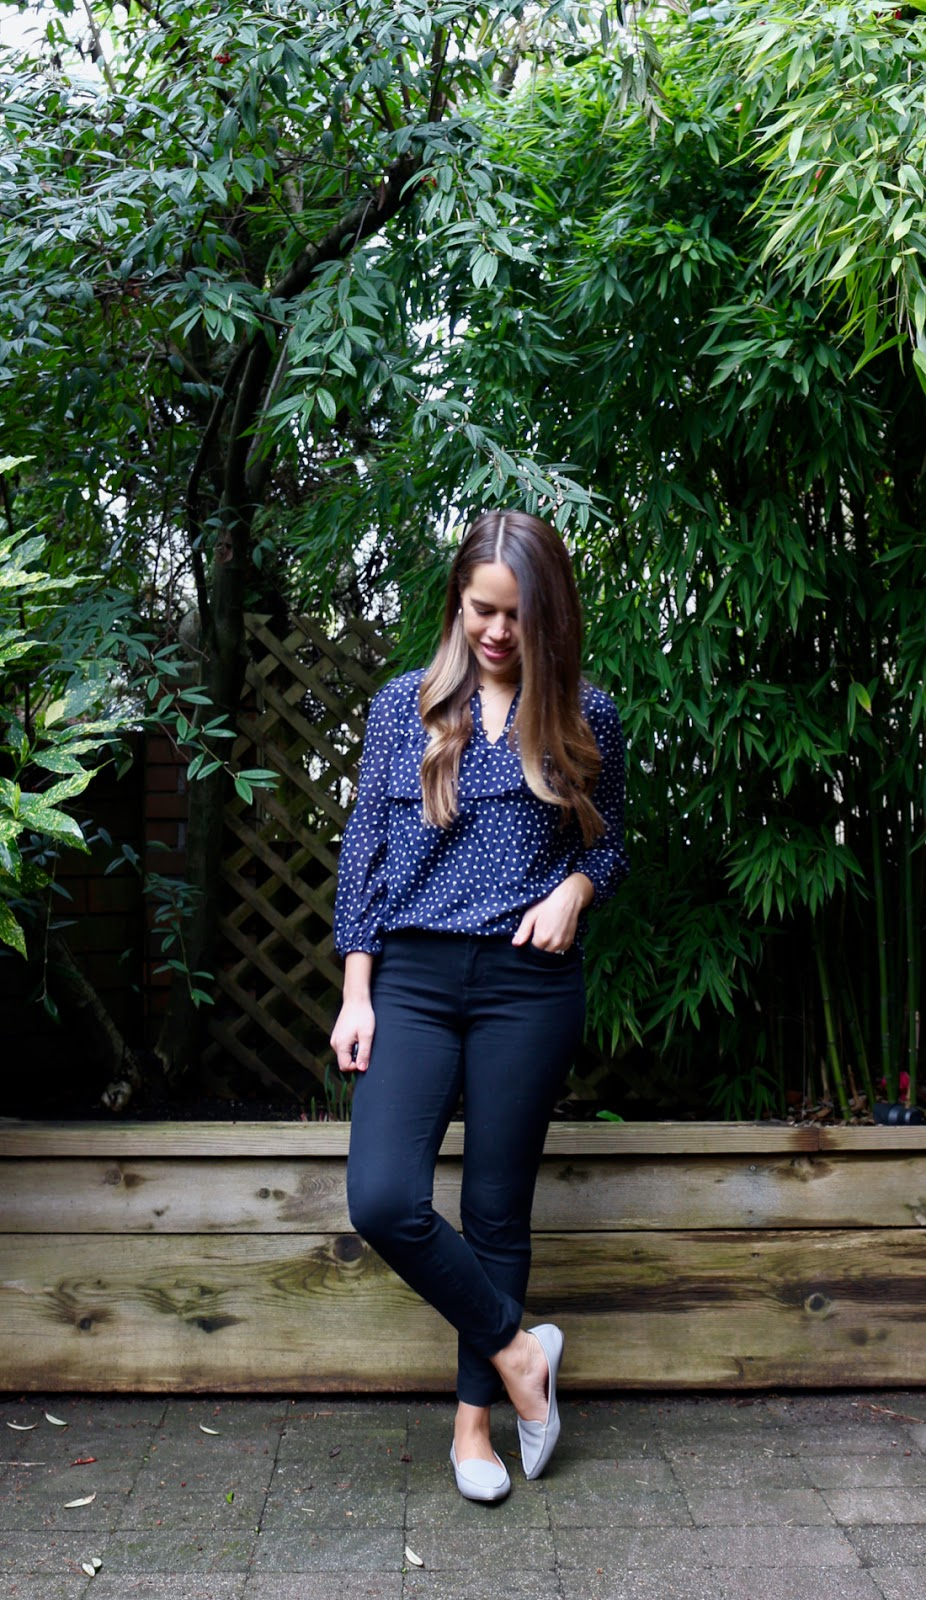 Jules in Flats - Ruffle Dot Top (Business Casual Spring Workwear on a Budget)